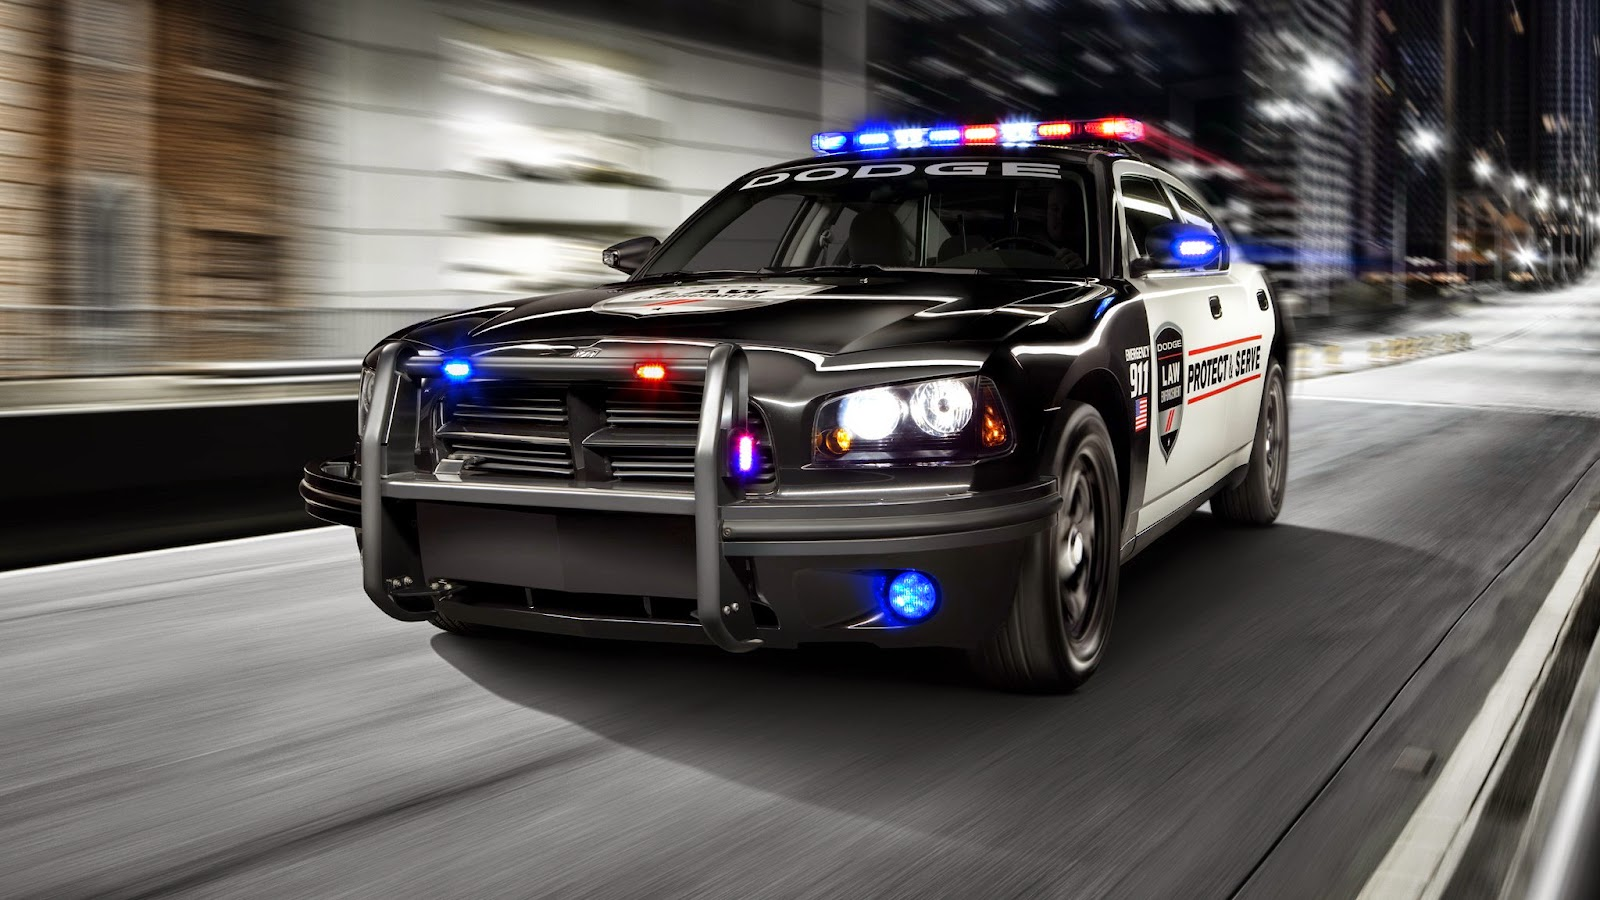 dodge charger police car wallpaper free hd wallpaper and desktop